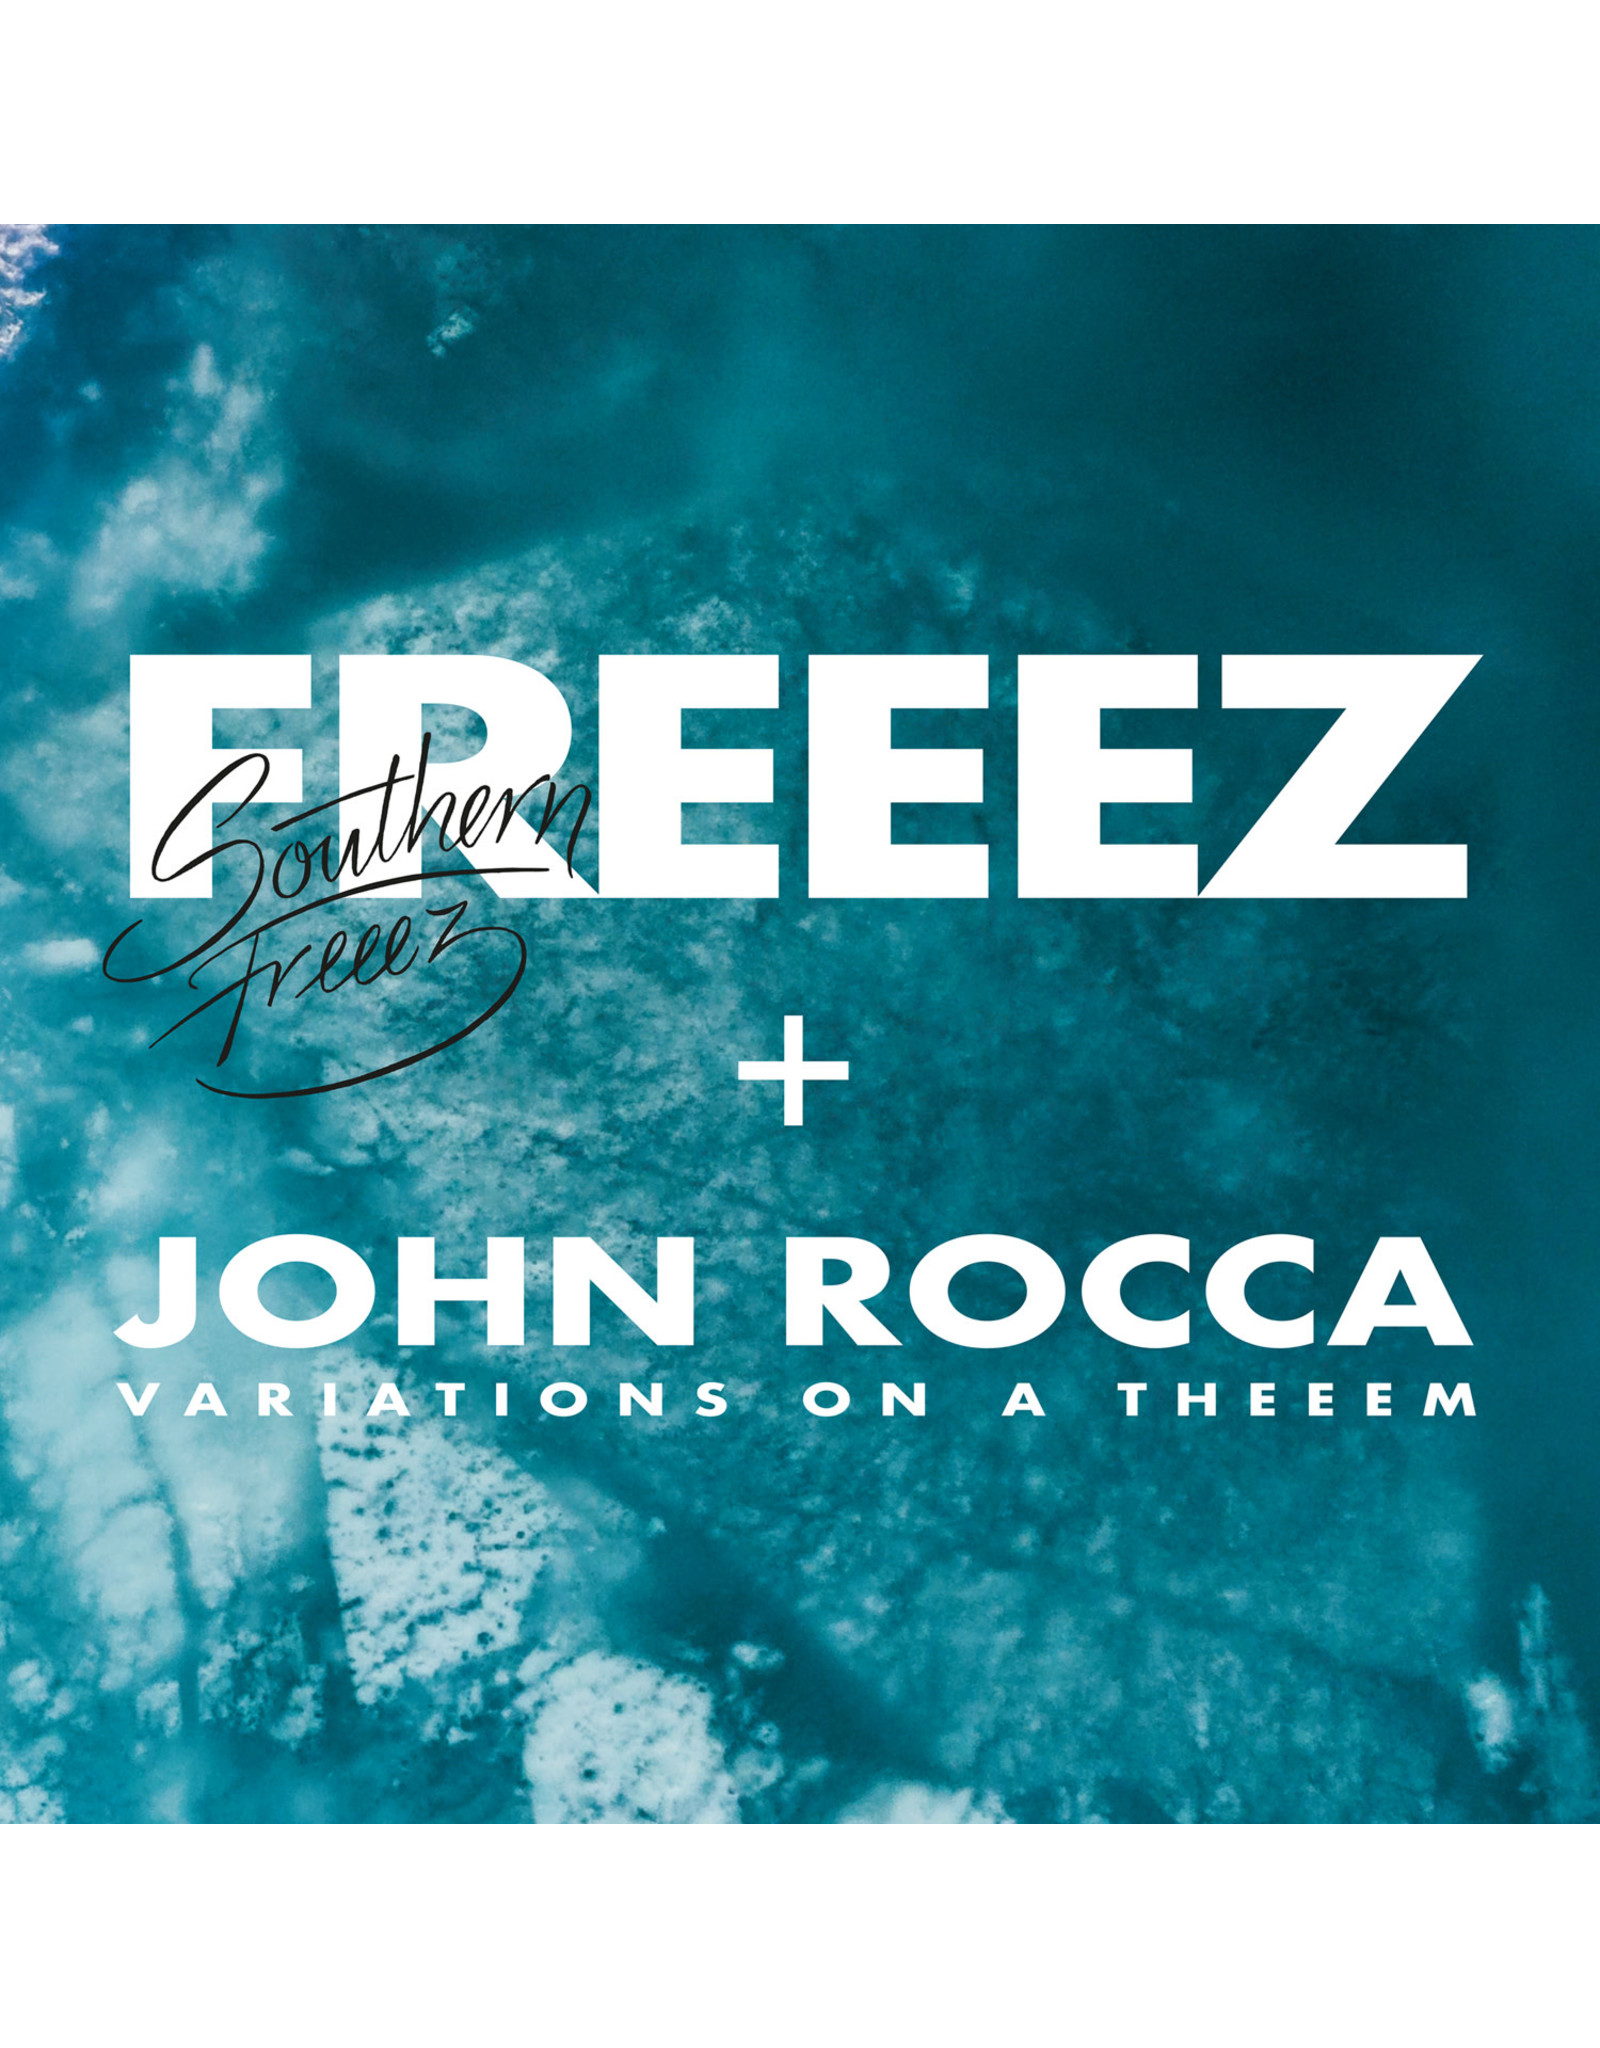 Freeez / John Rocca - Southern Freeez (Variations On A Theeem)